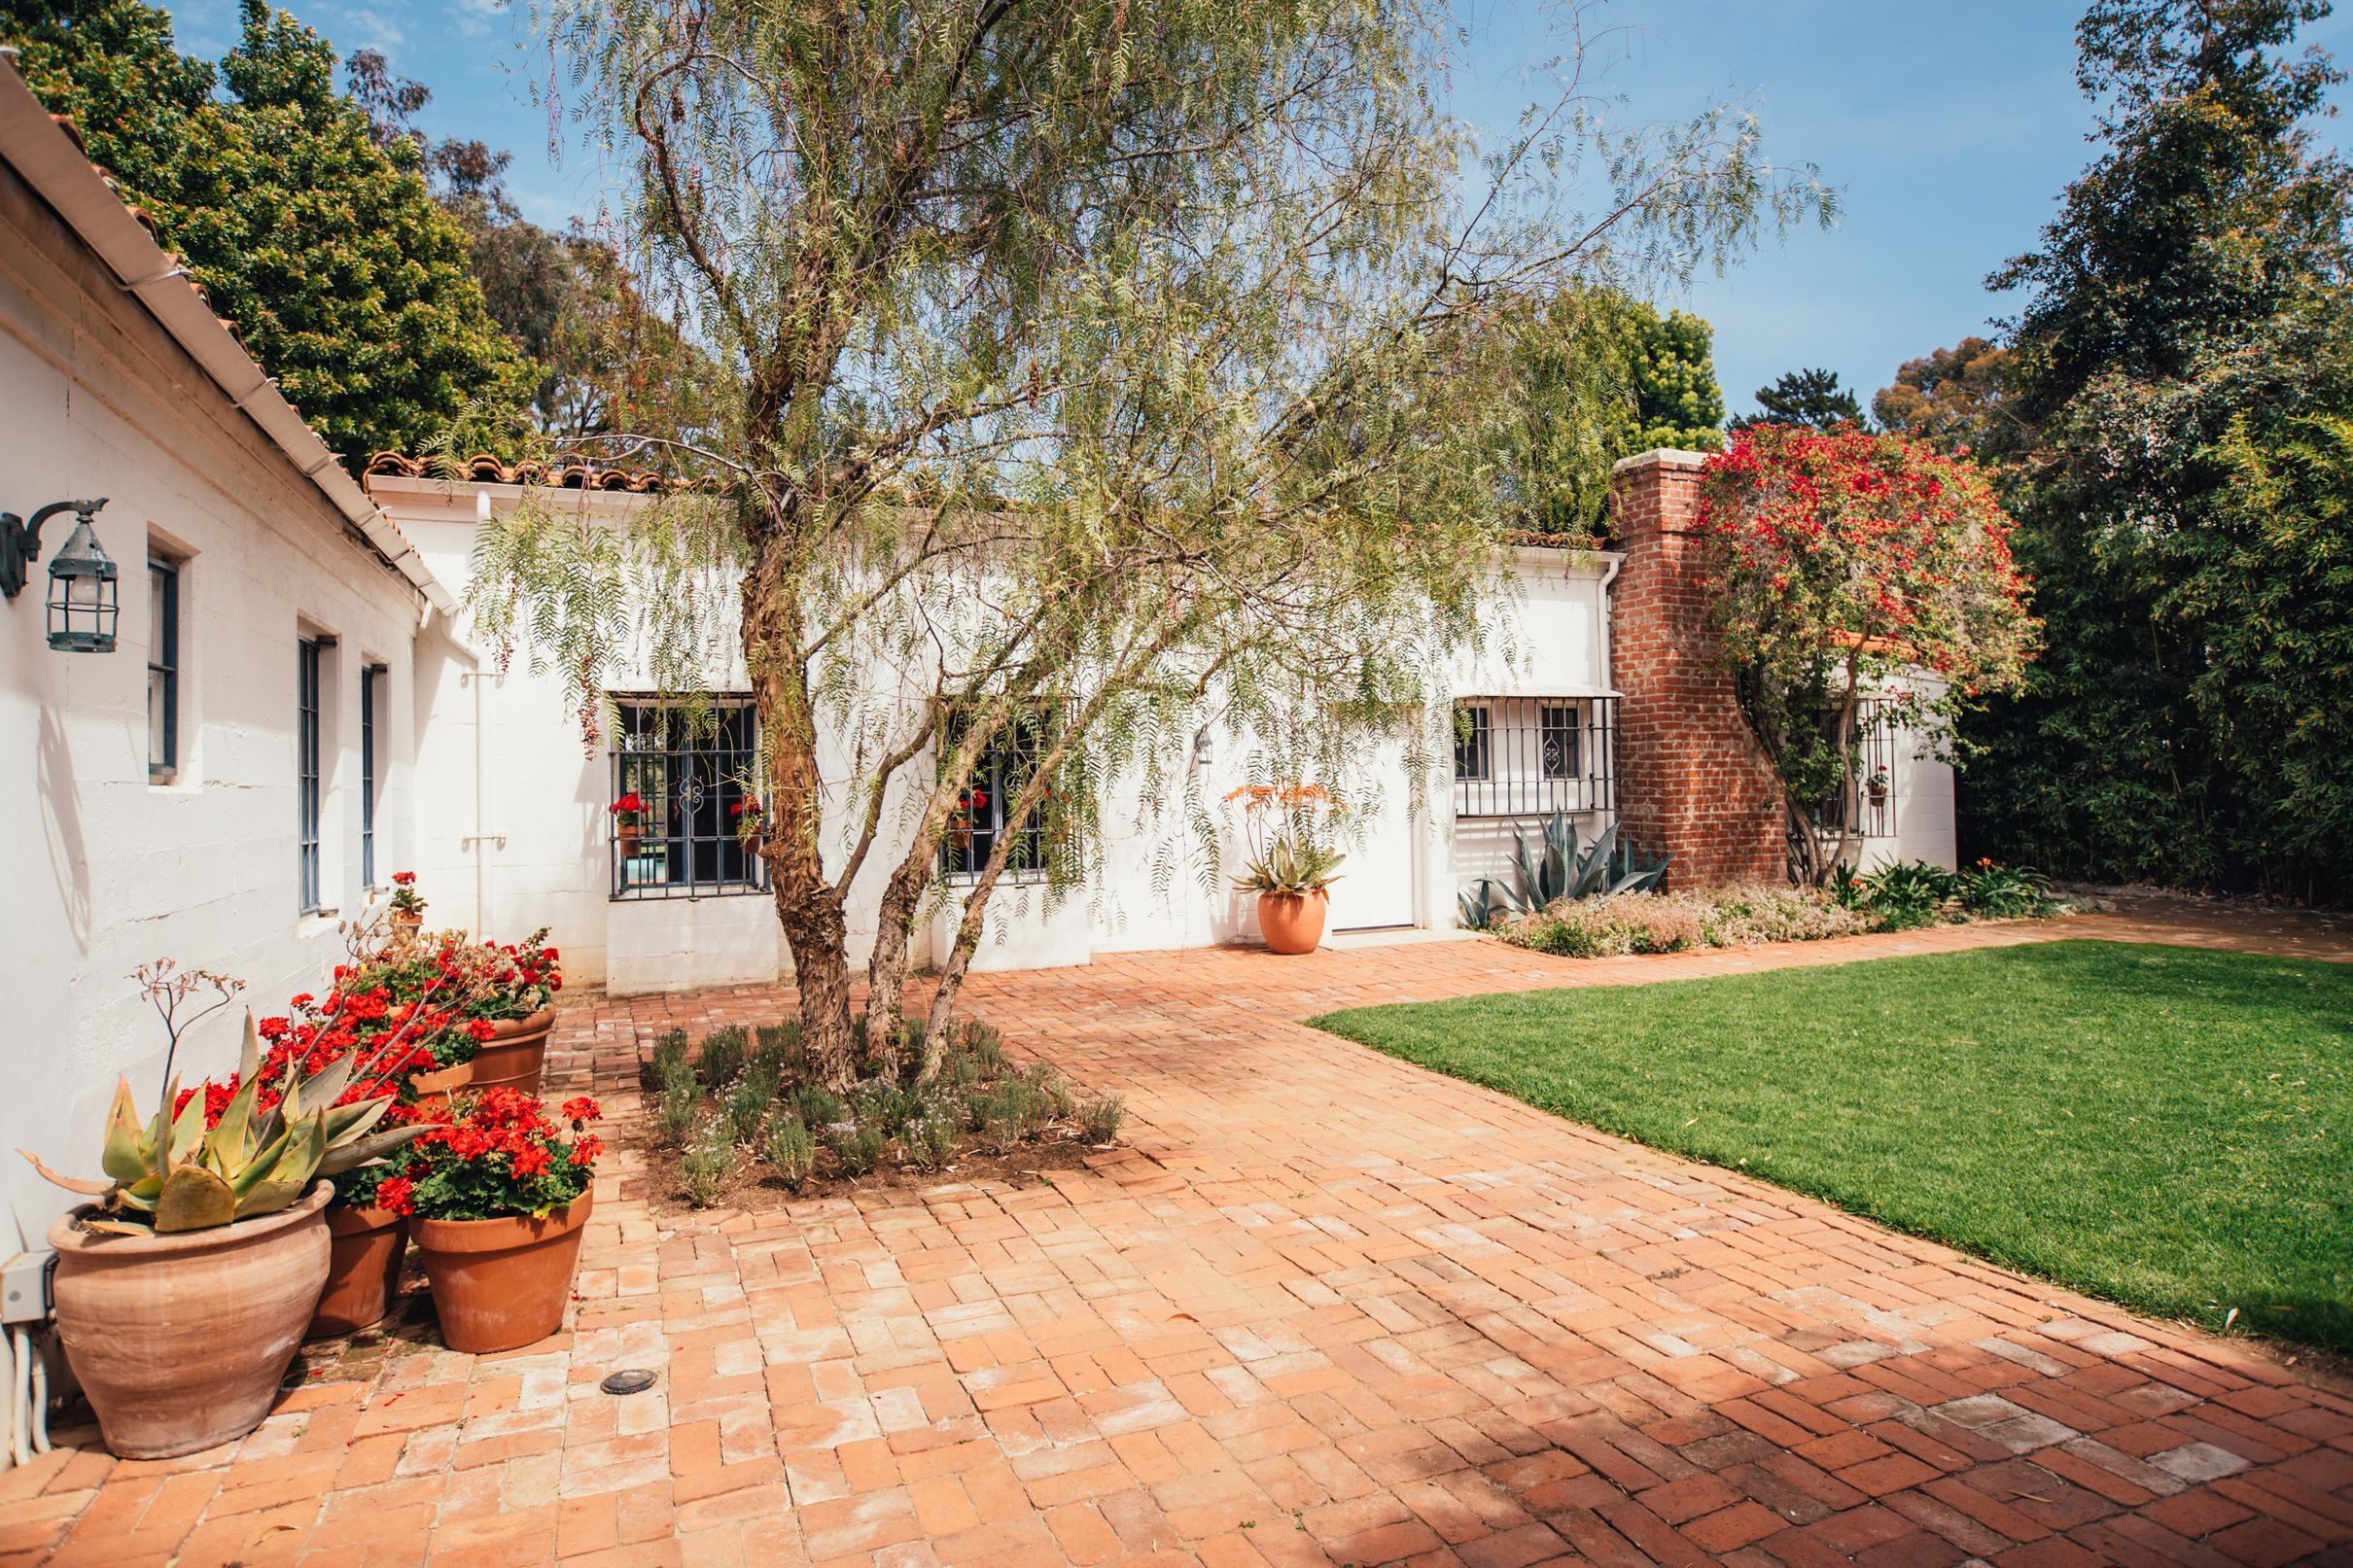 Luxury Los Angeles house Marilyn Monroe d in goes up for sale for